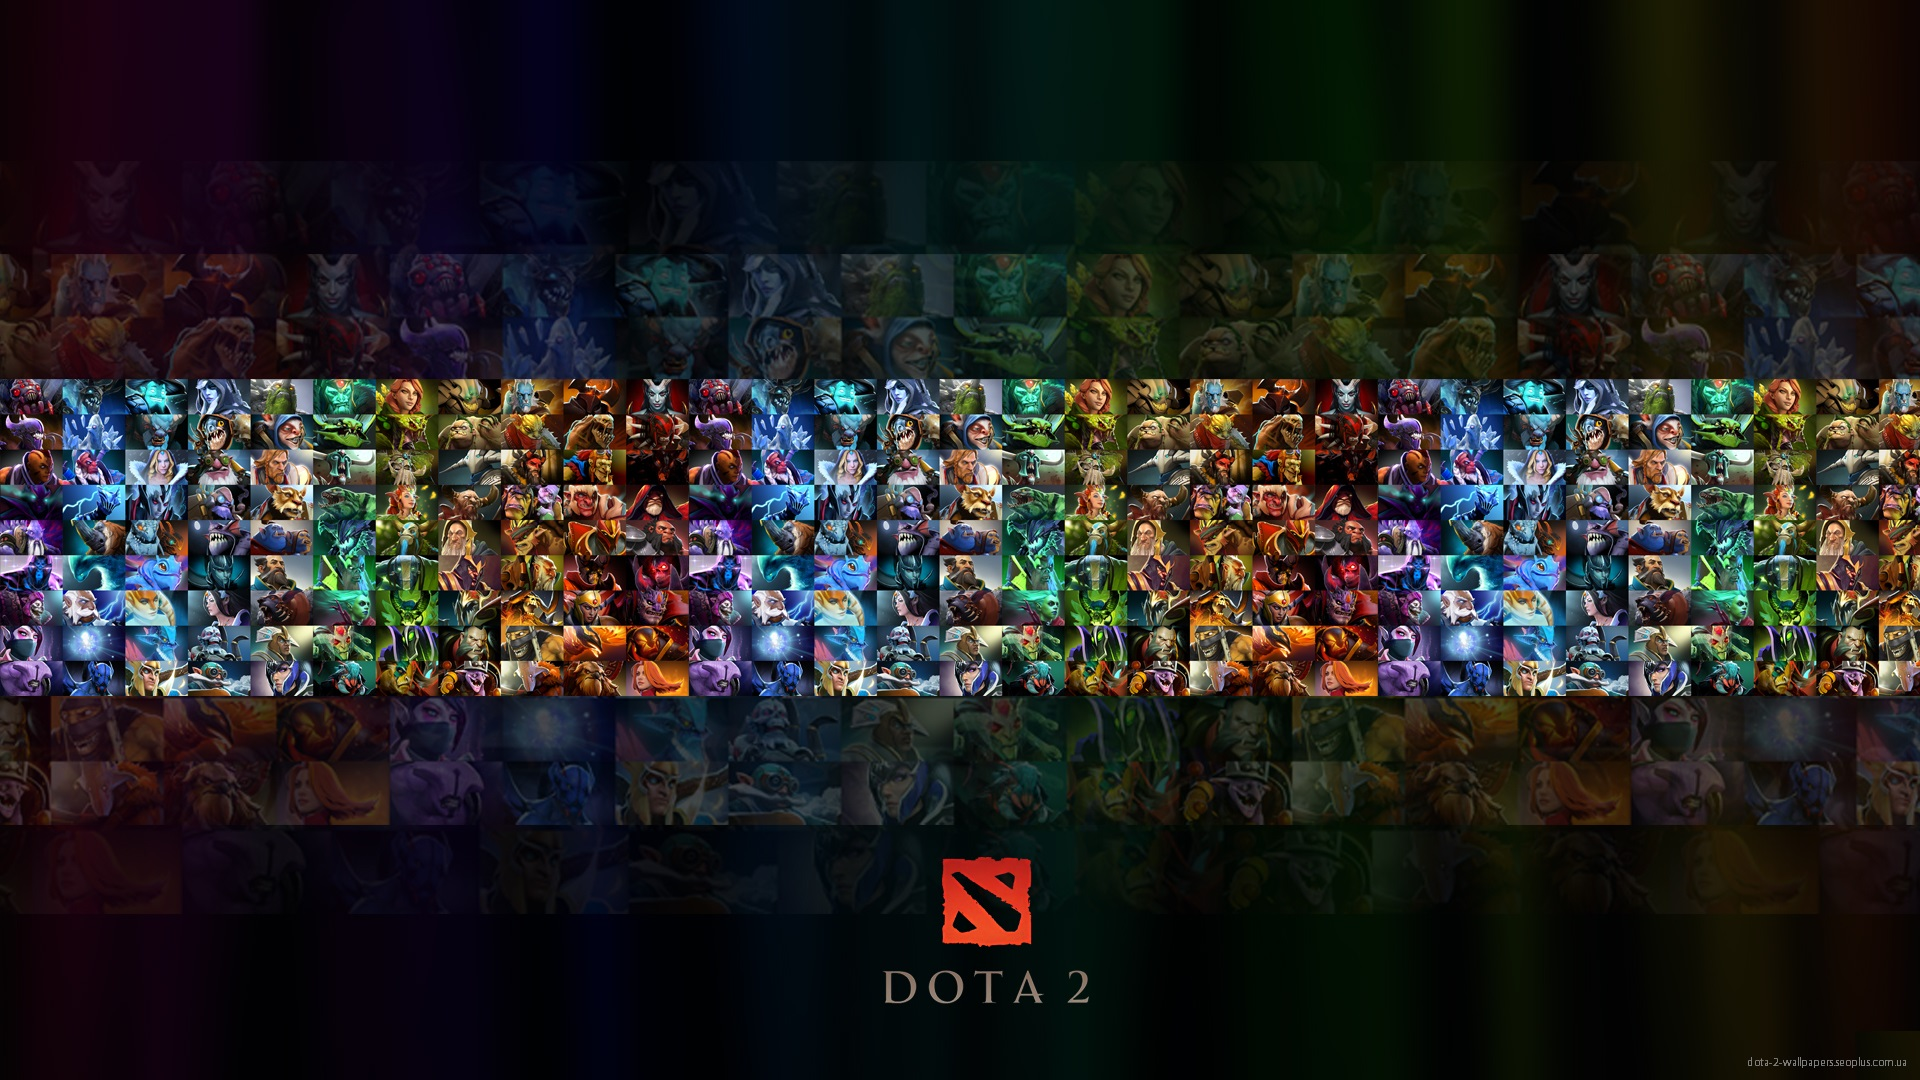 dota2 wallpapers.seoplus.com.ua 141